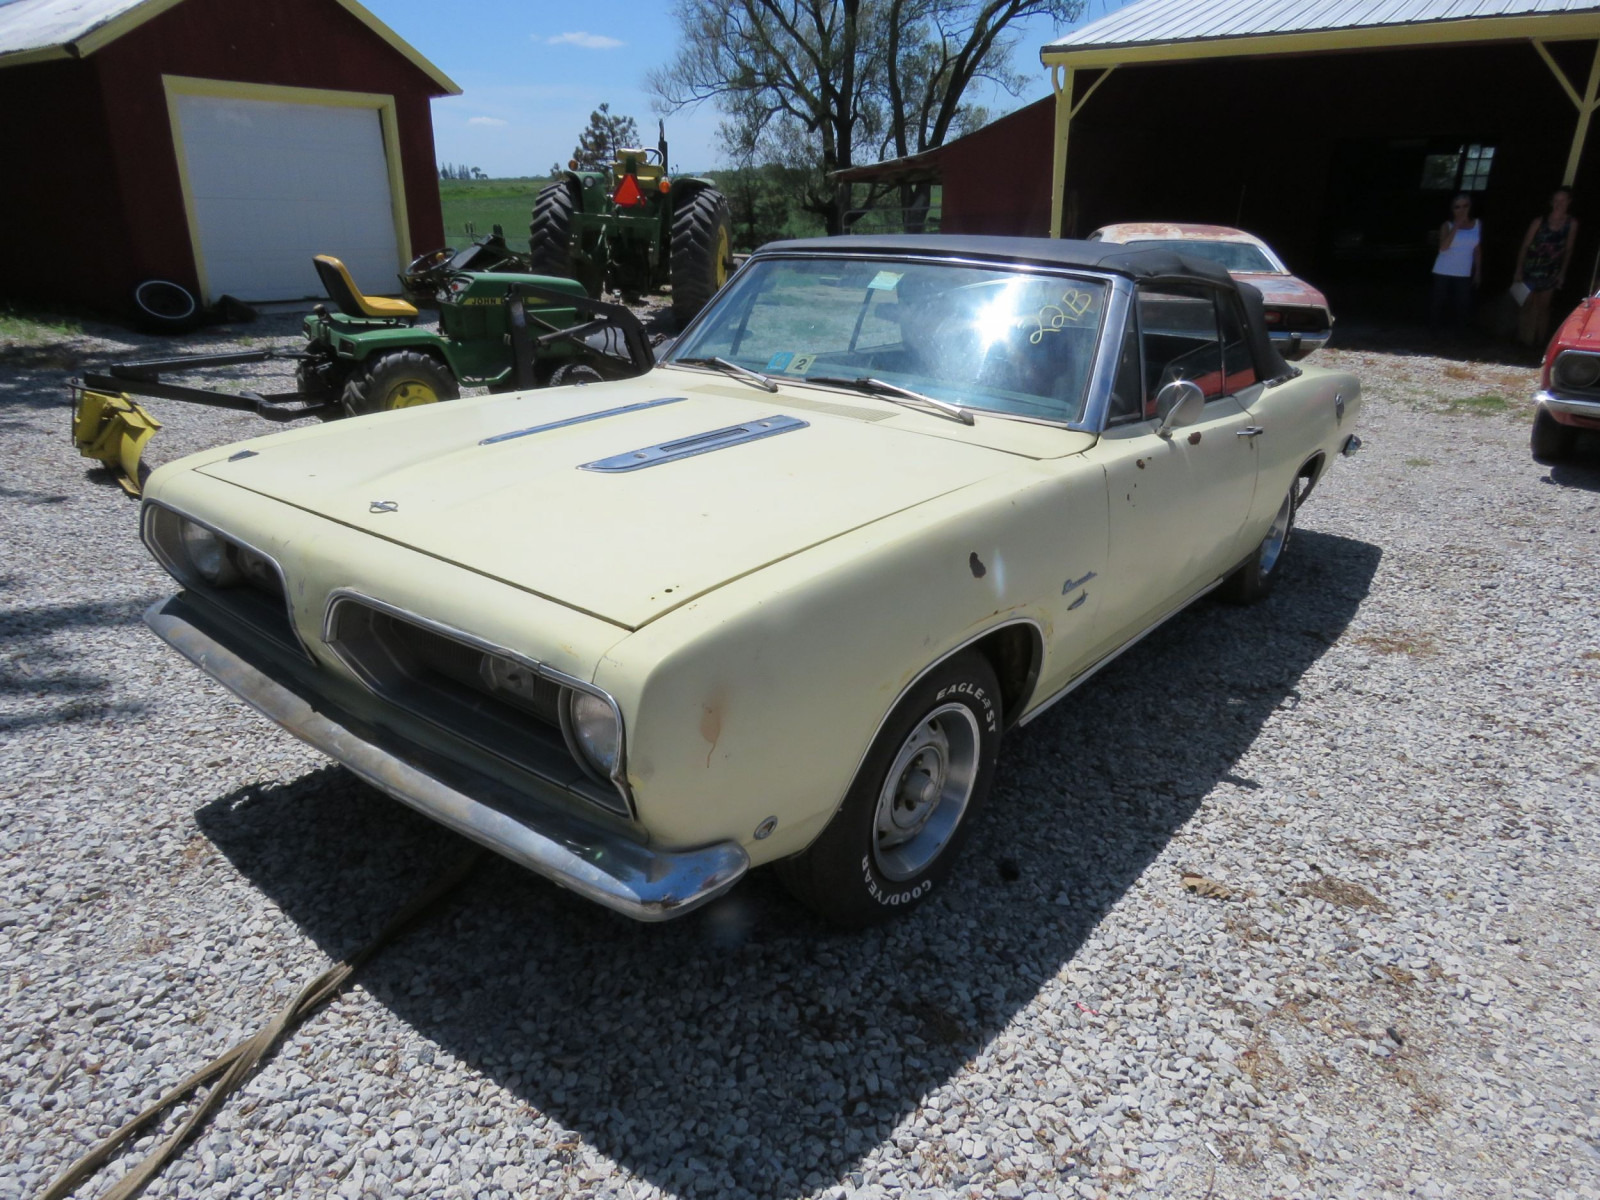 1968 Plymouth Barracuda Convertible - Image 1